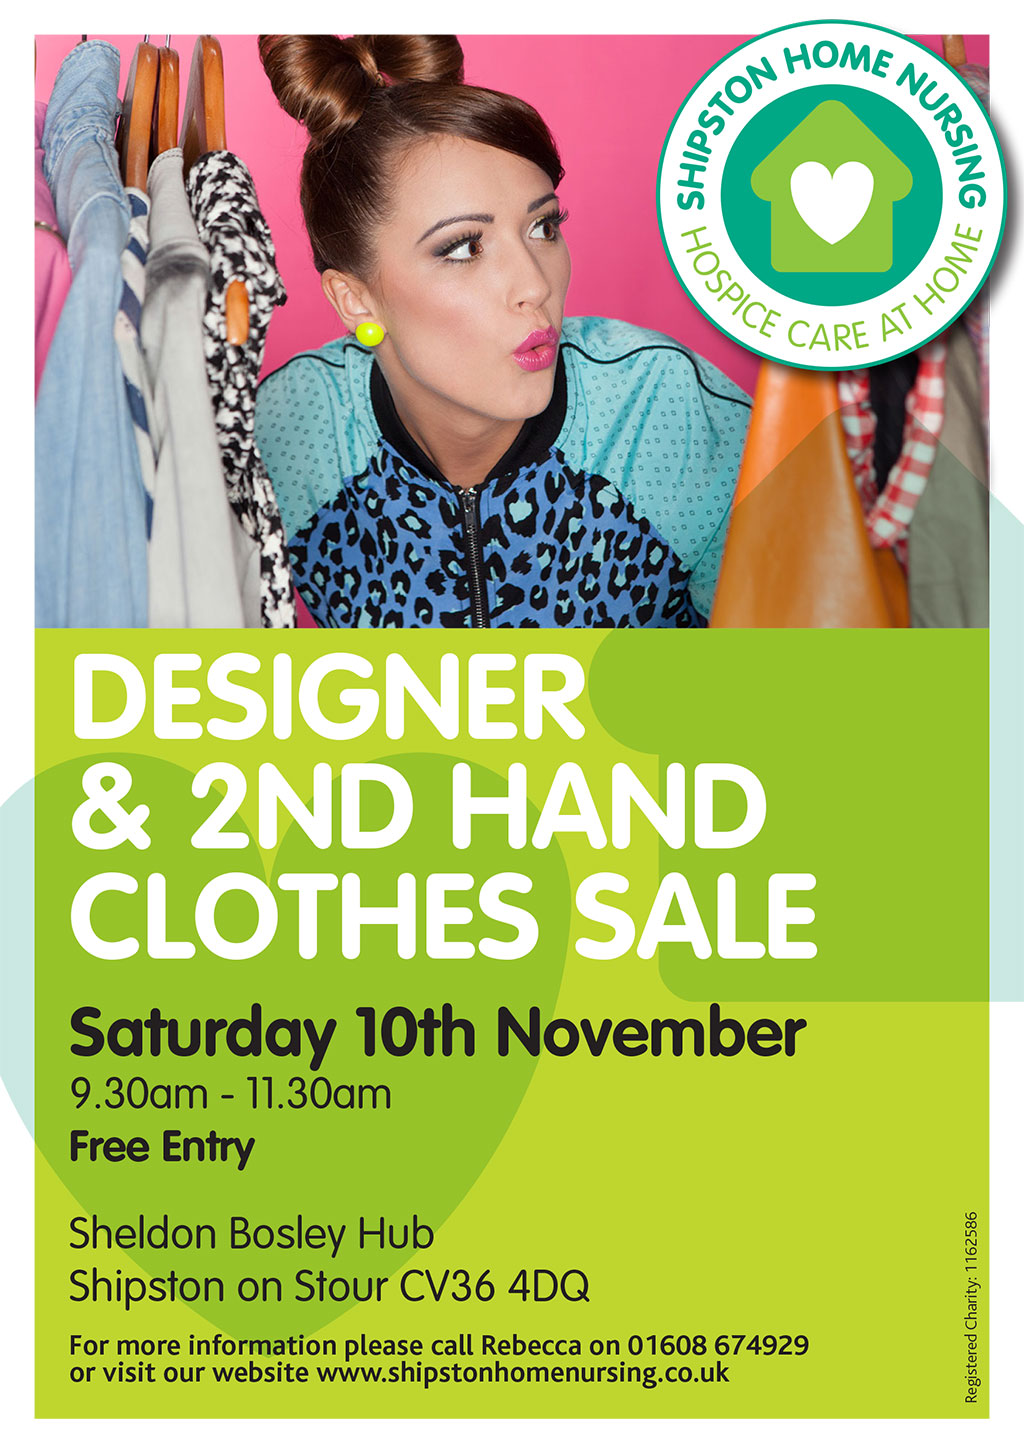 Designer & 2nd Hand Clothes Sale